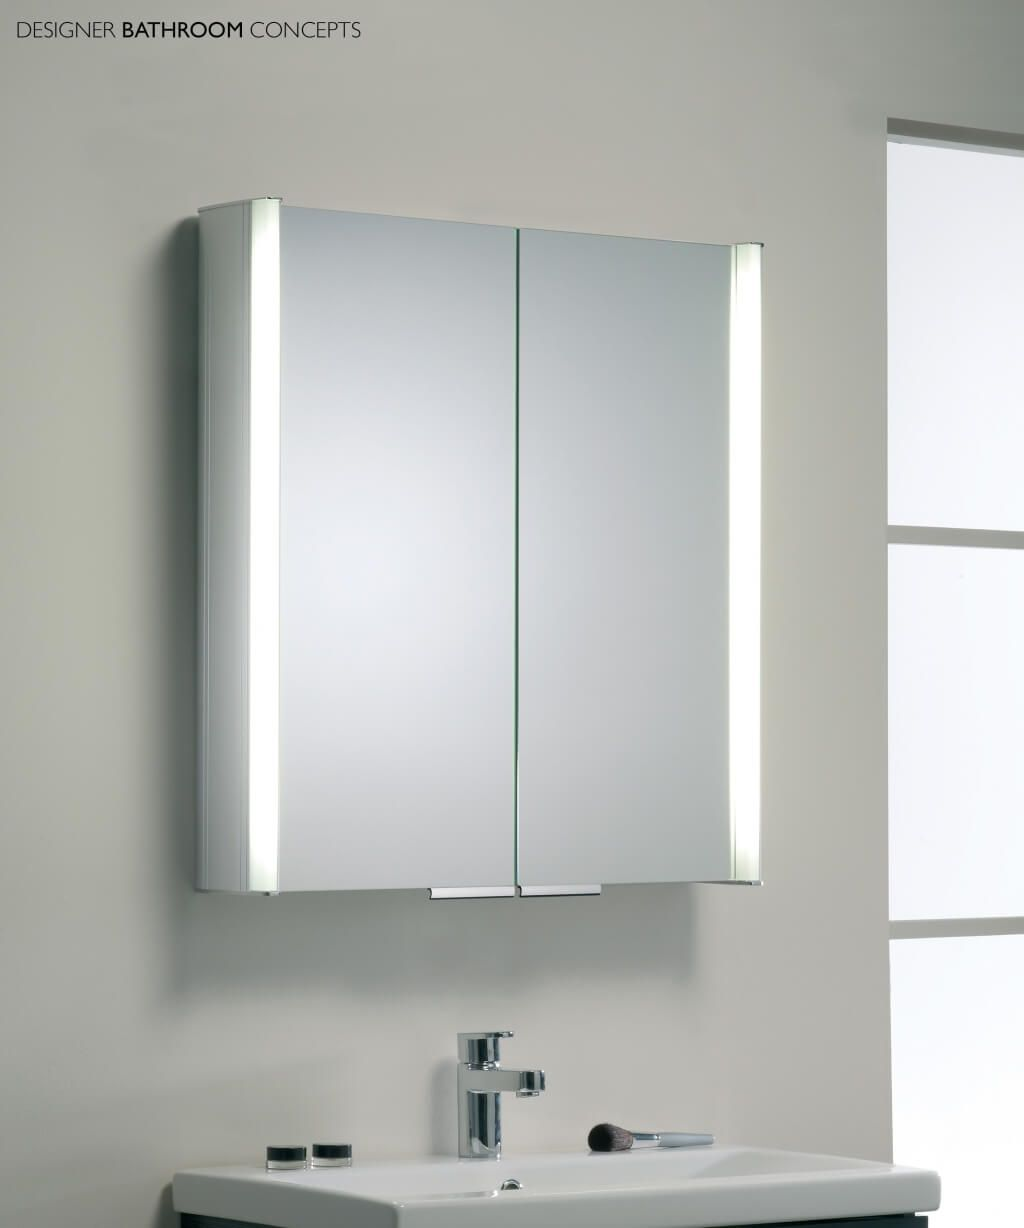 Bathroom Mirrored Cabinets Bathroom Mirror Cabinet With Light And Standalone Bahtroom